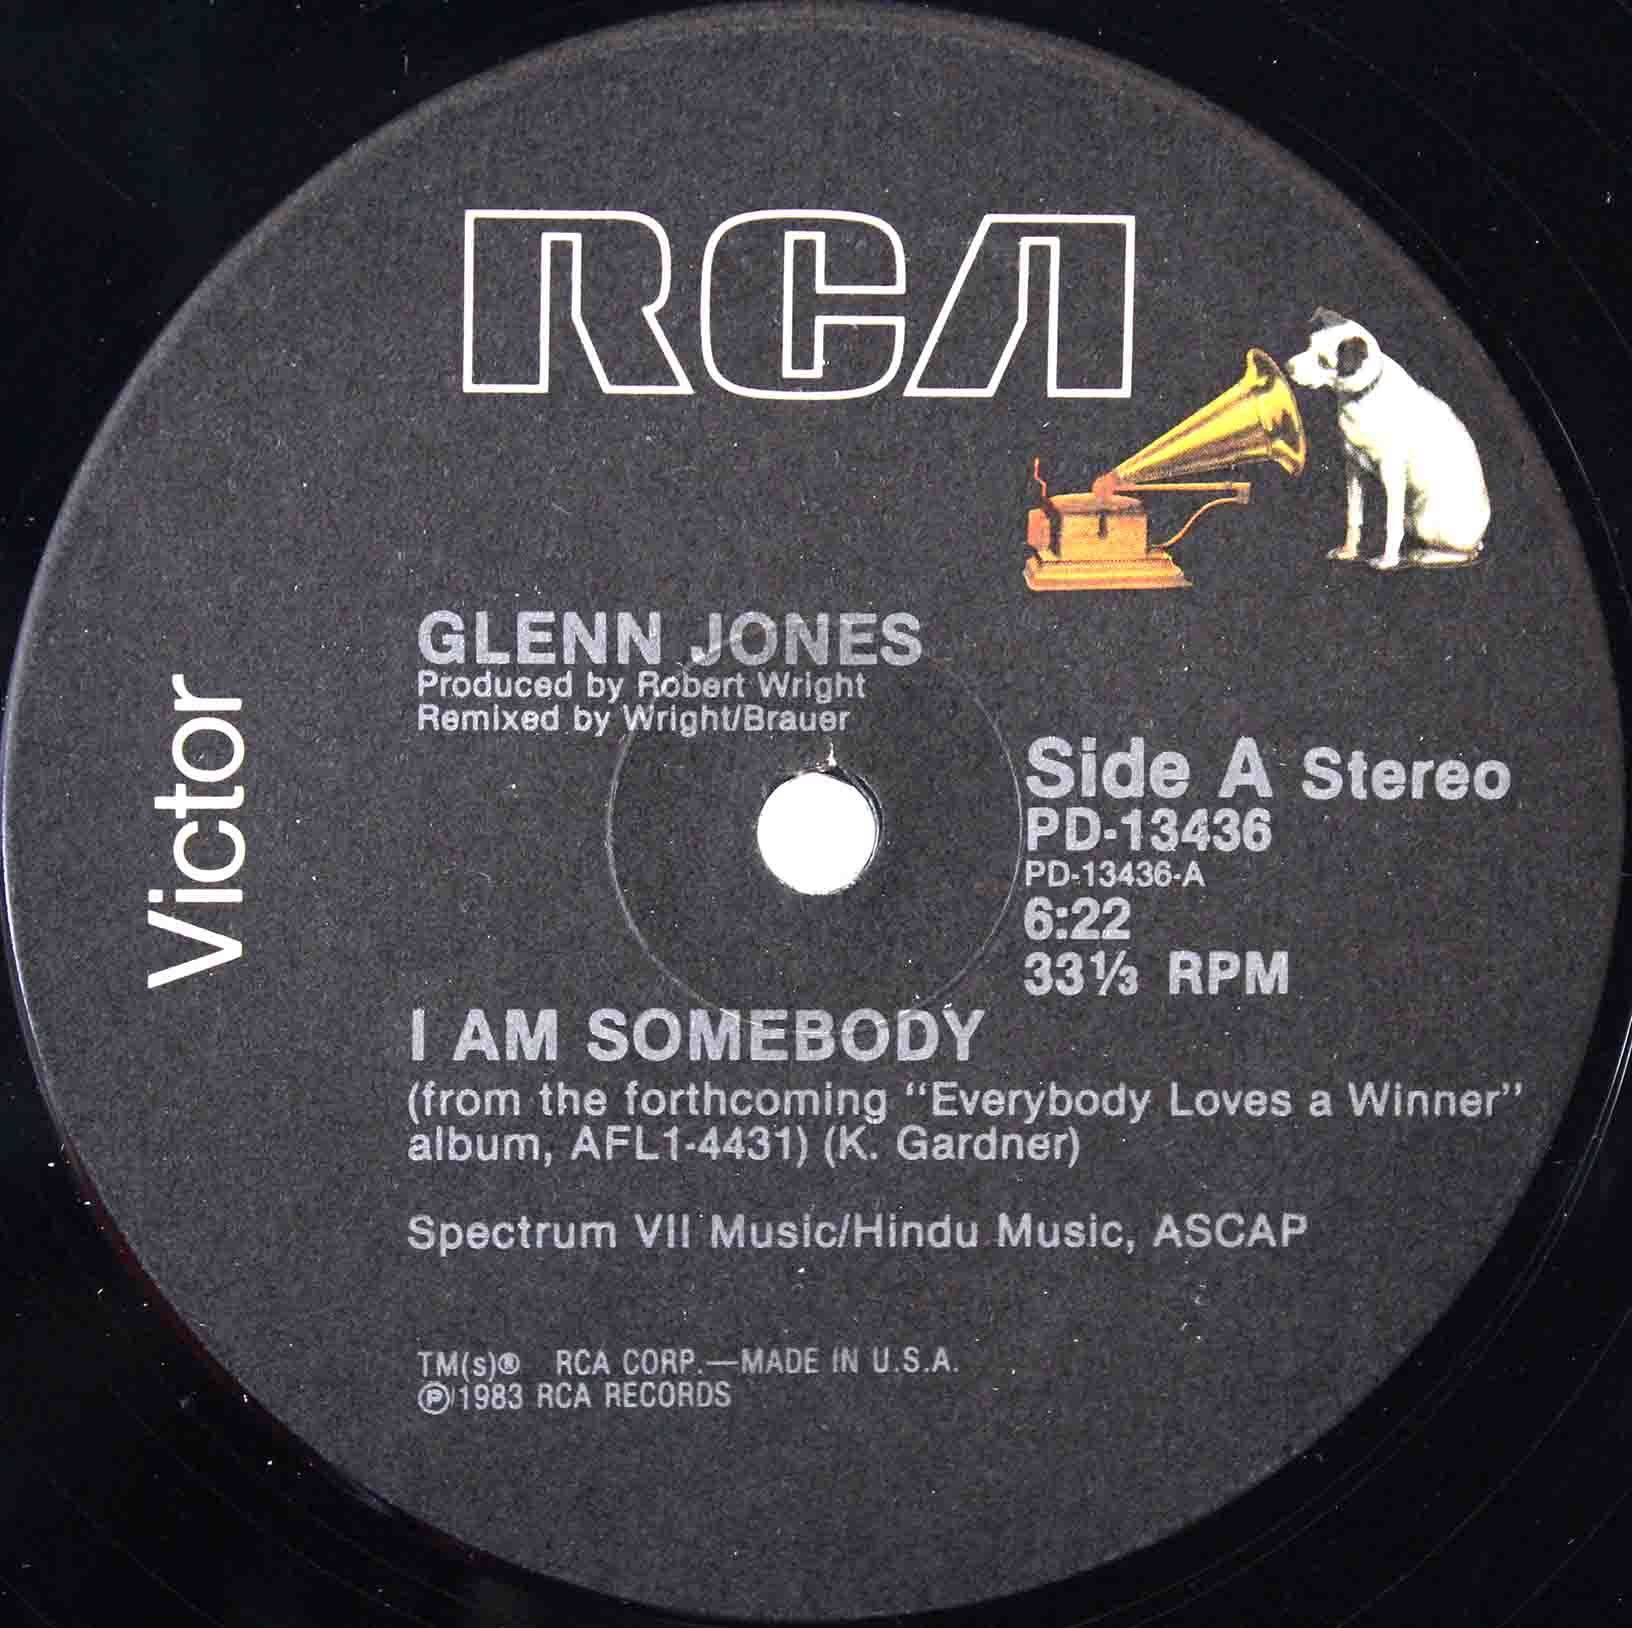 Glenn Jones - I Am Somebody 03